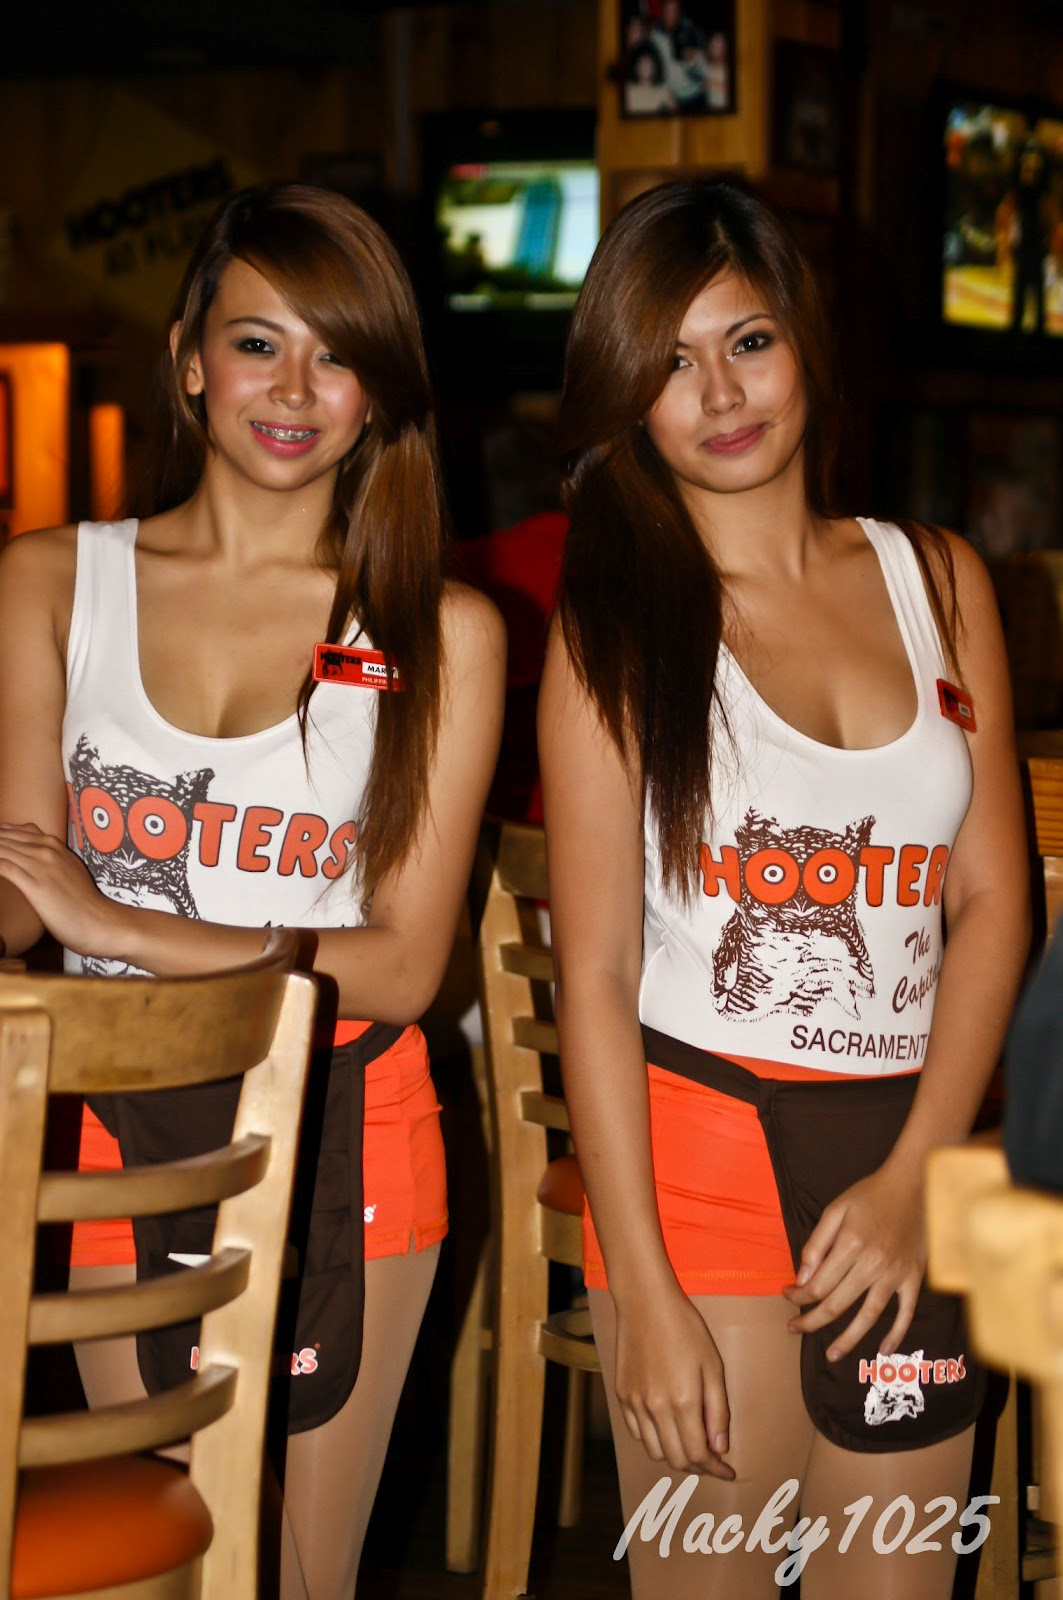 Has anyone ever dated a Hooters girl